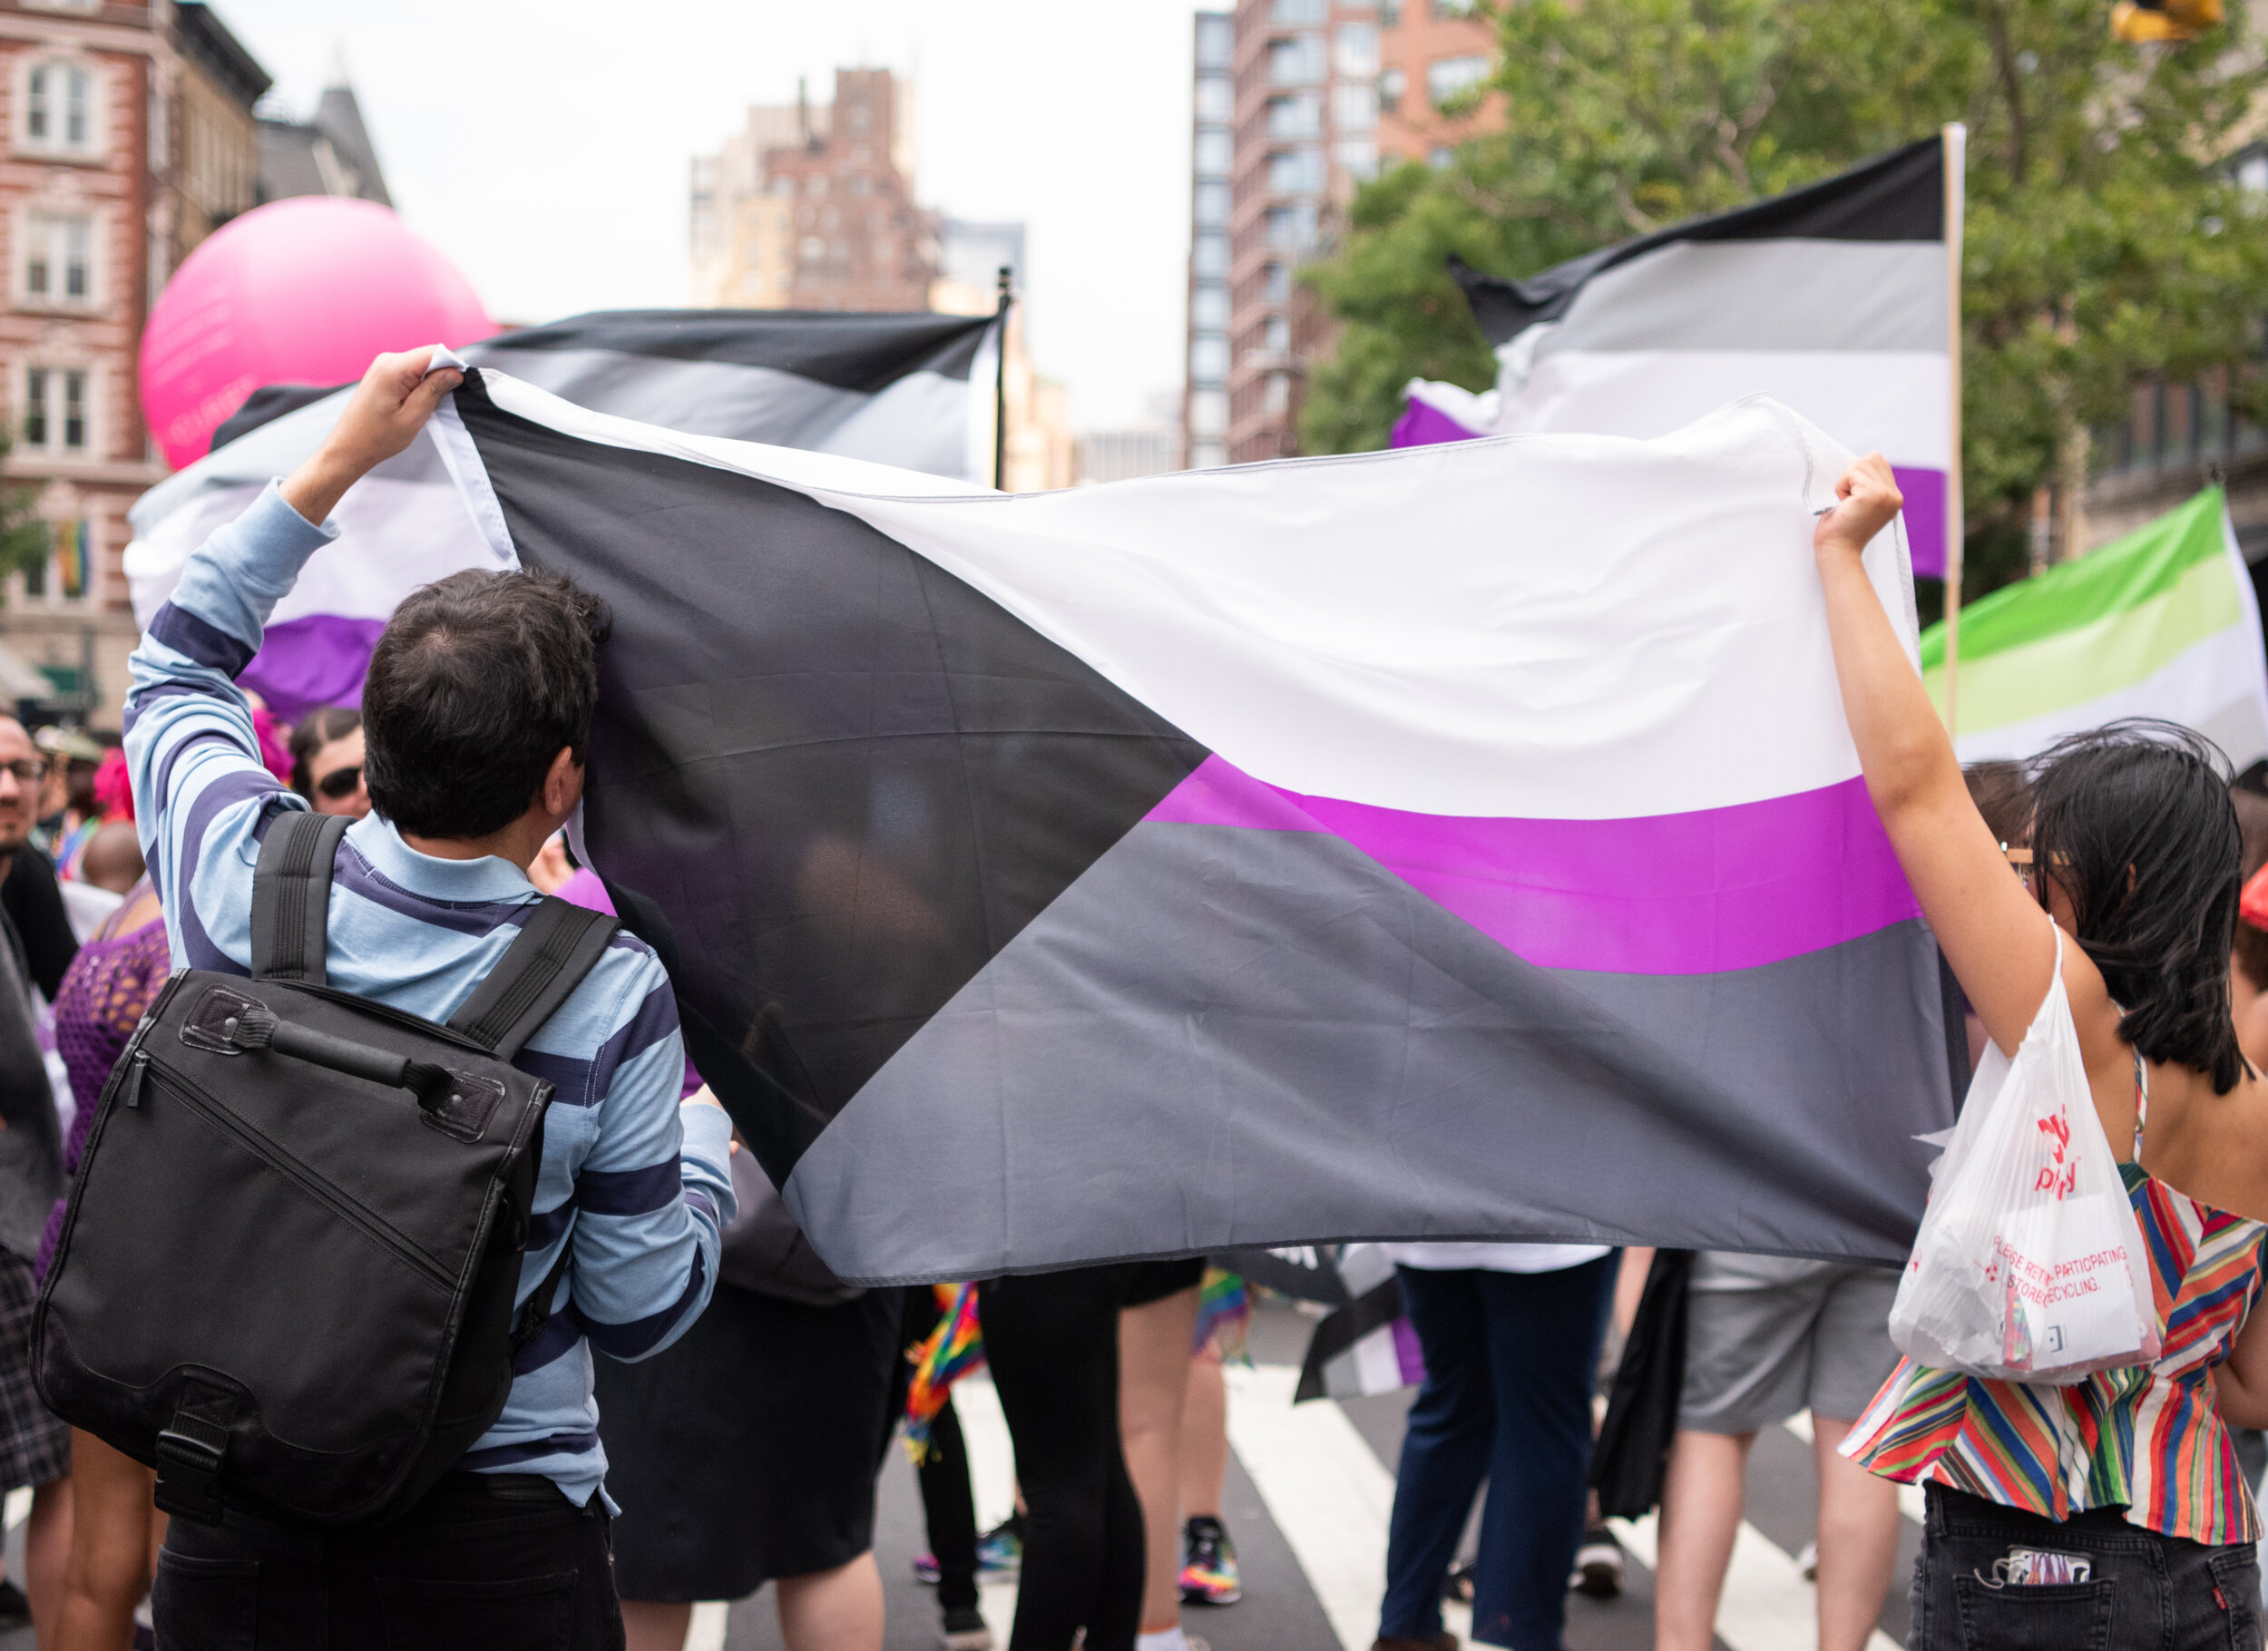 Two brown people holding up a large demisexual flag at a parade. One has short dark hair and the other has shoulder length dark hair.